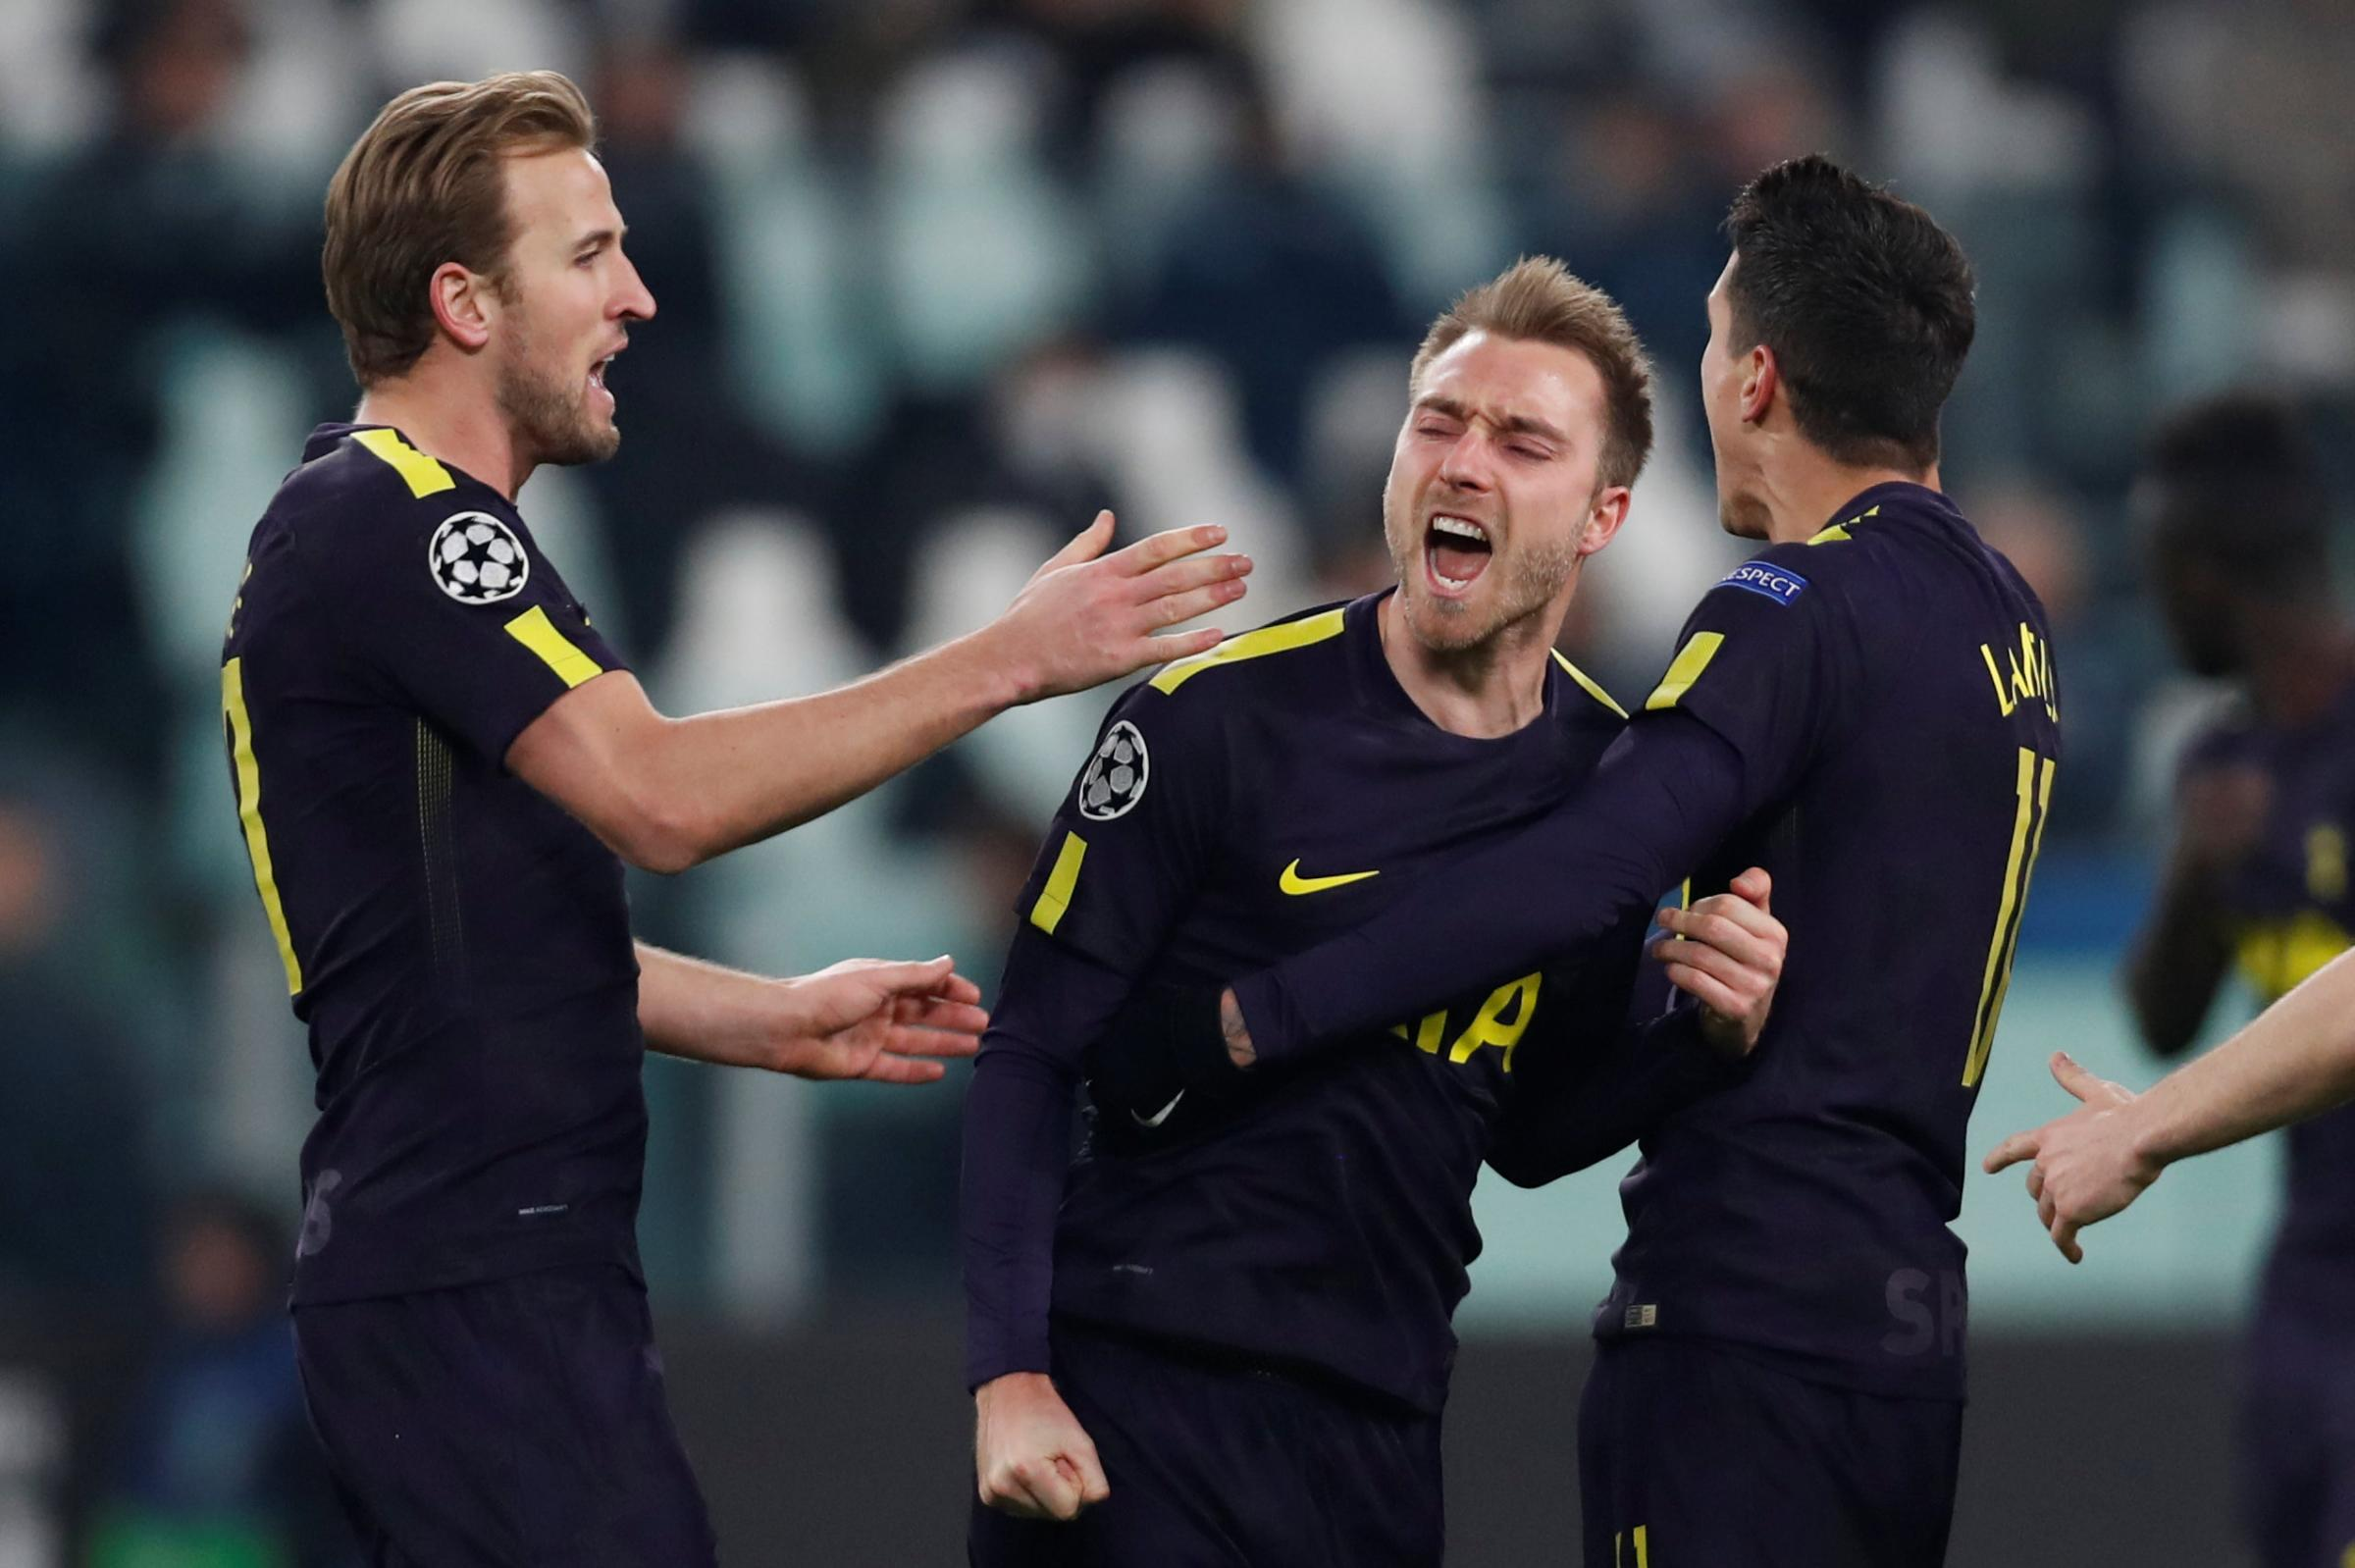 Christian Eriksen celebrates his equaliser. Picture: Action Images